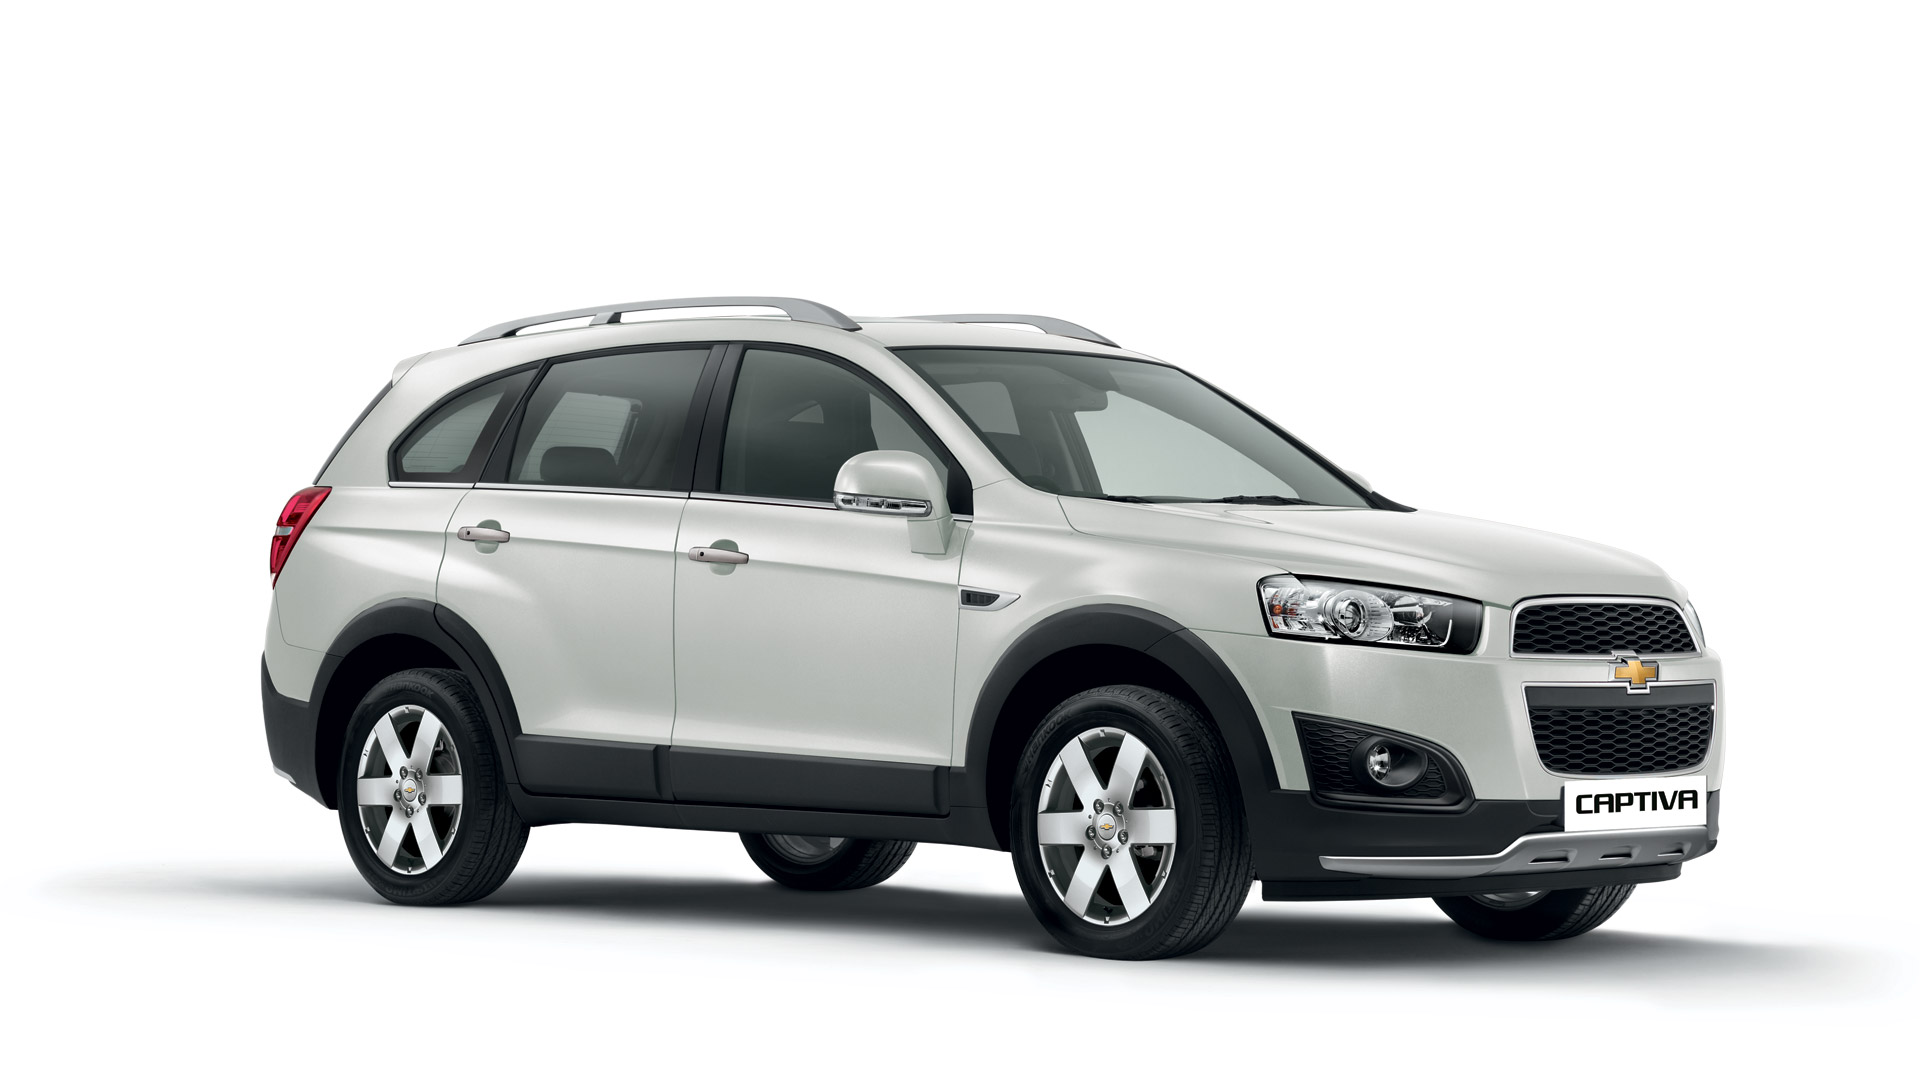 chevrolet captiva 2015 images #2